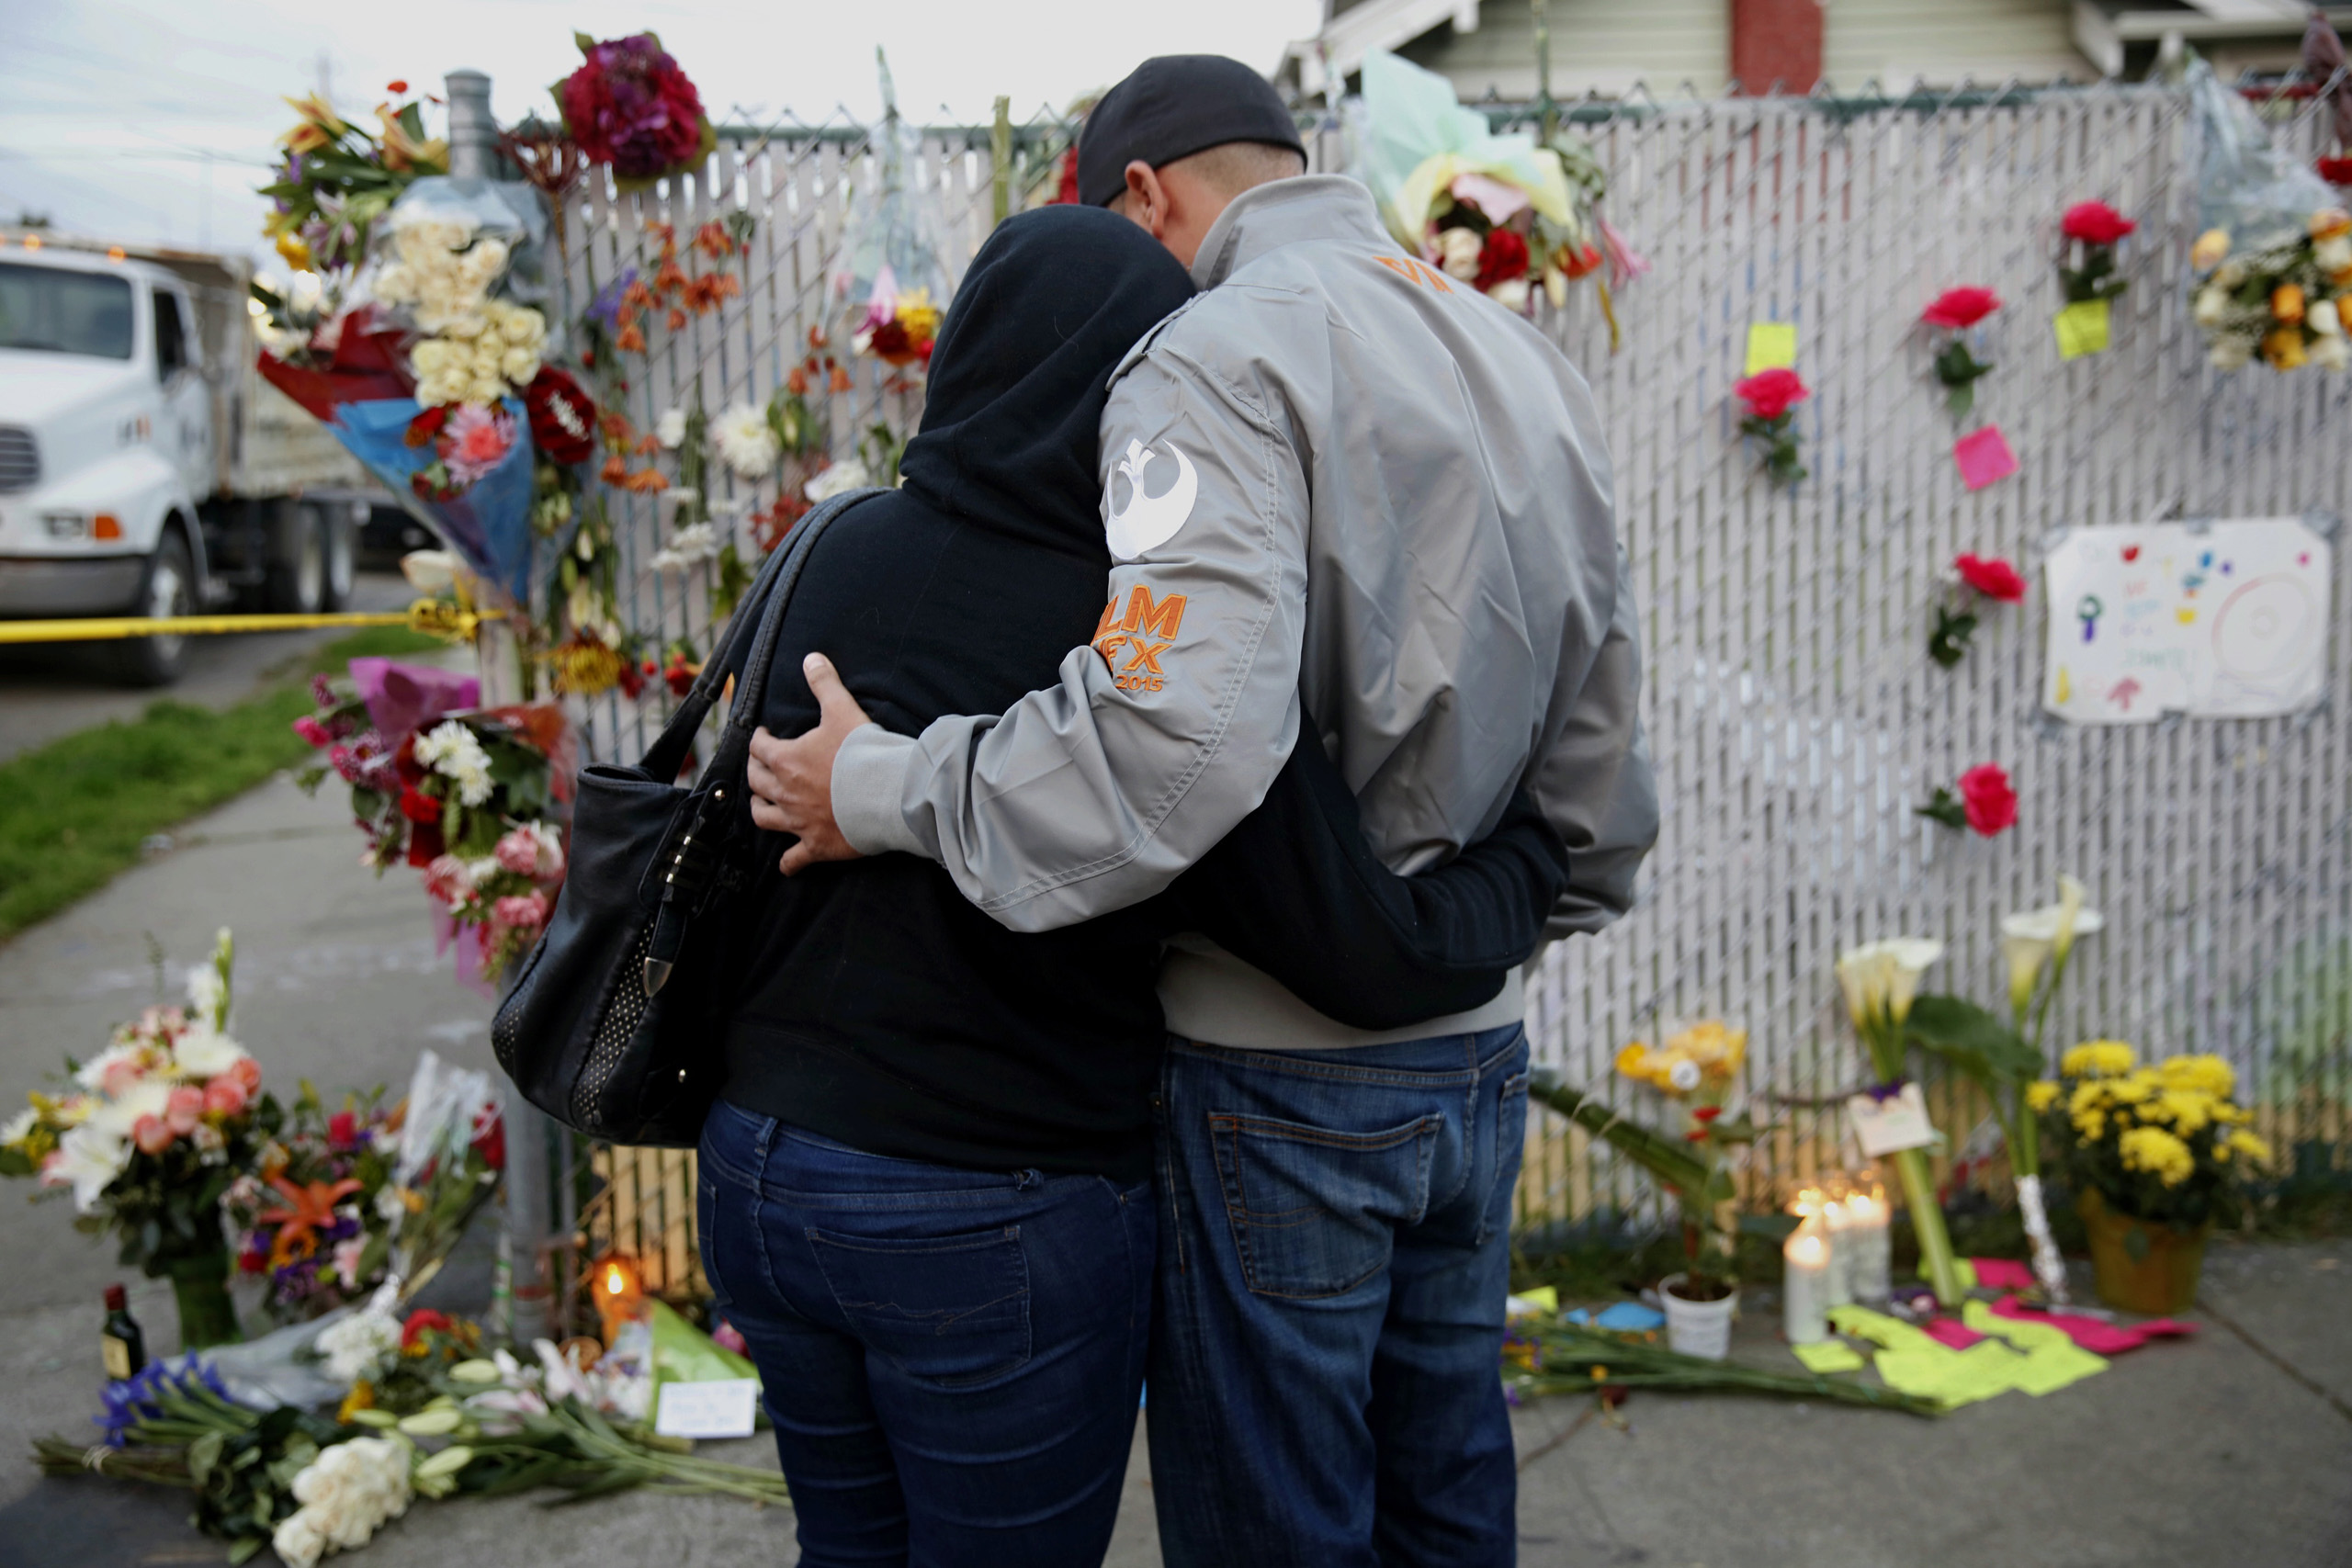 Mourners hug next to flowers near the site of the warehouse fire in Oakland, Calif., on Dec. 4, 2016.